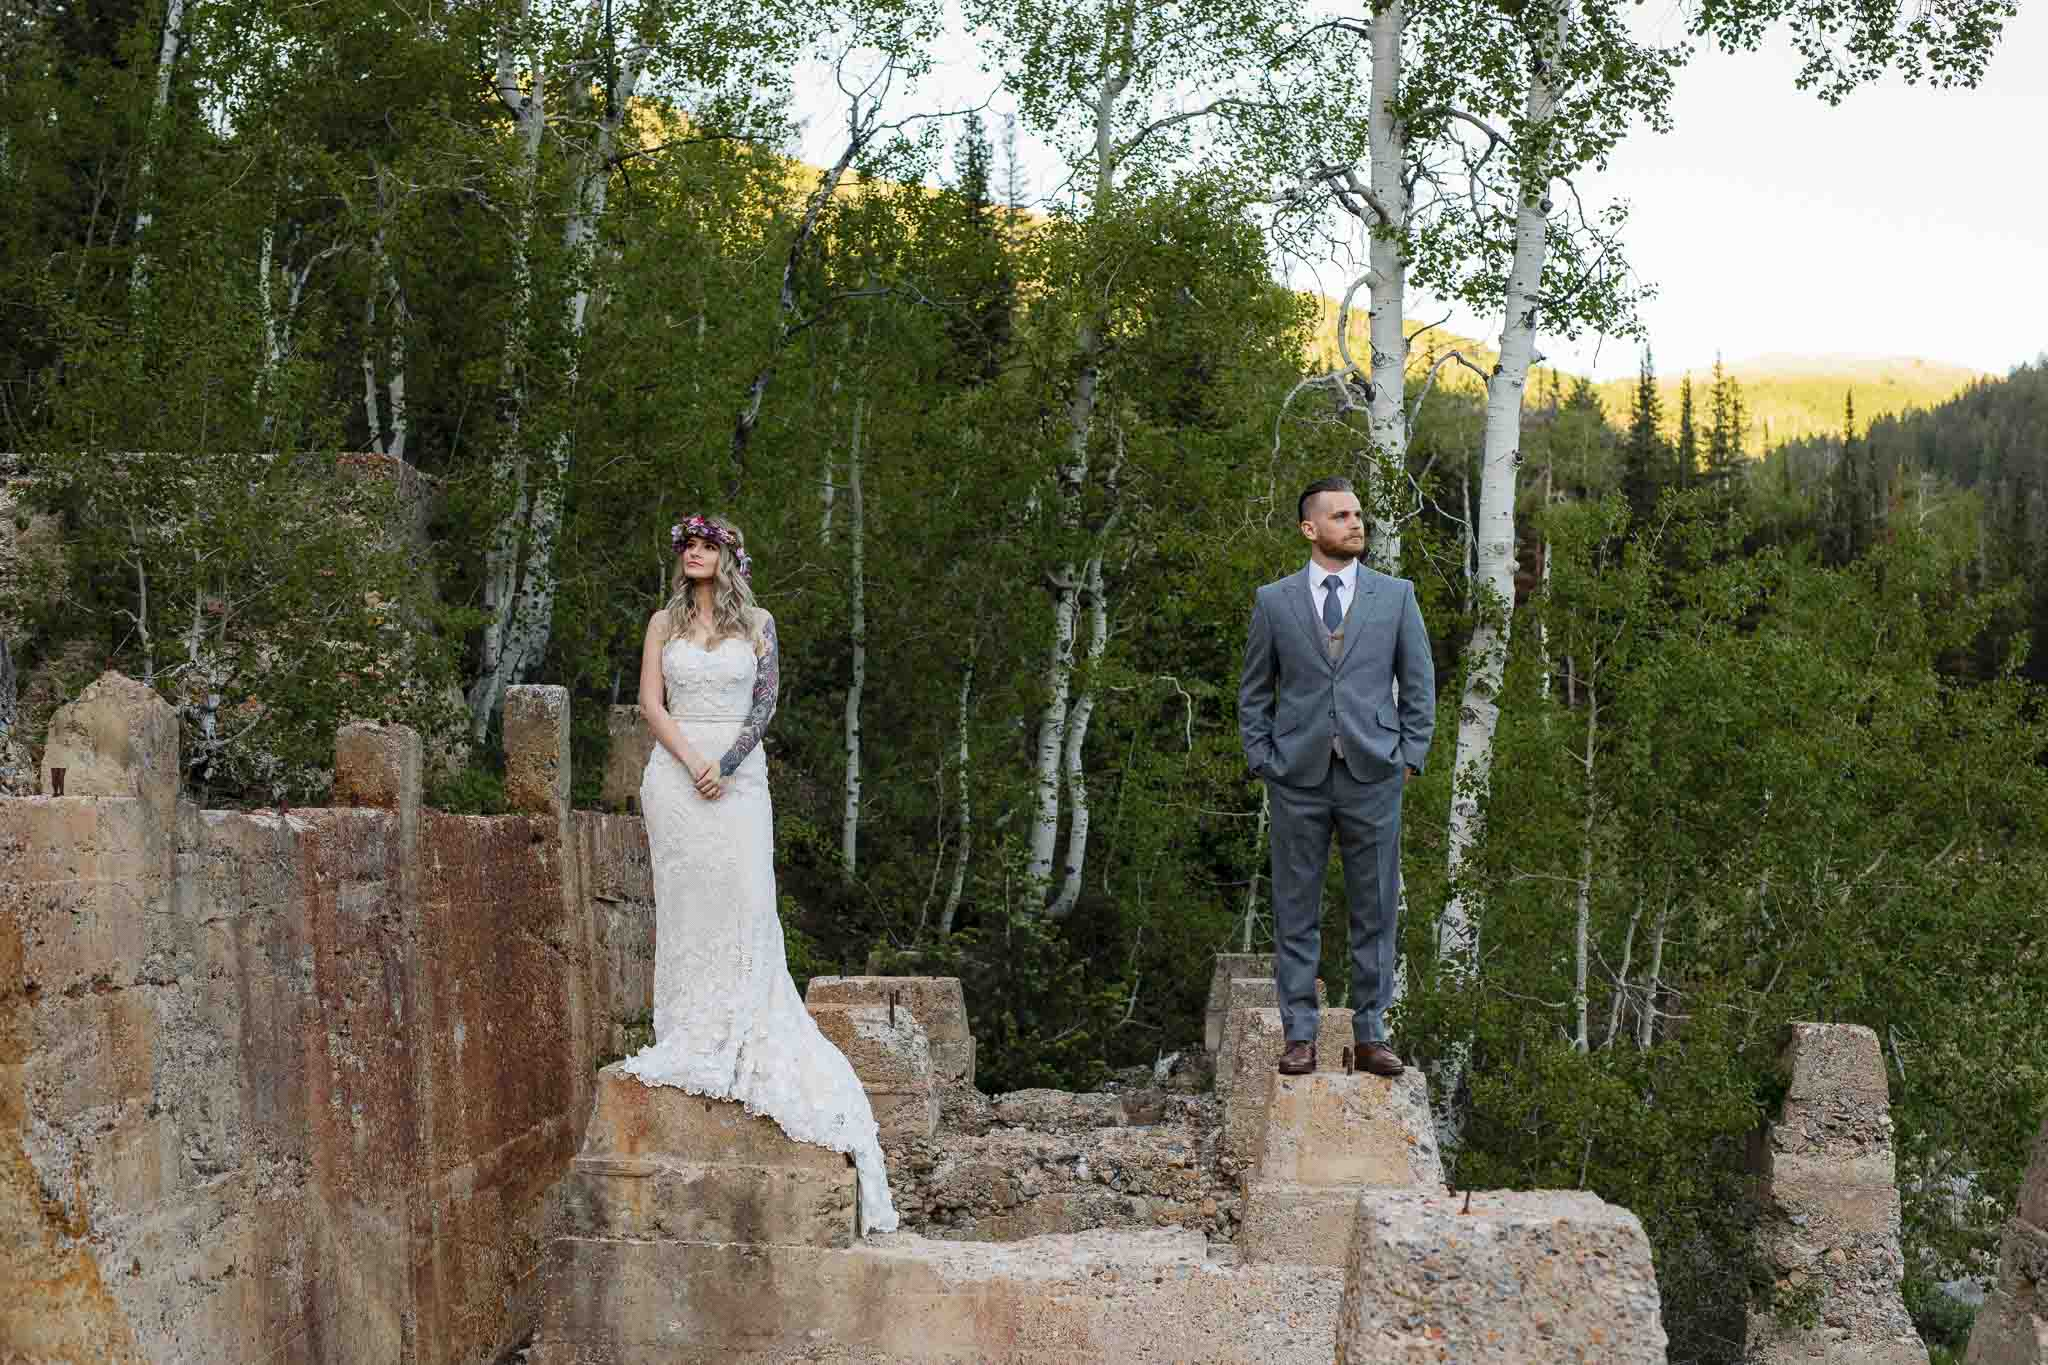 Bride and groom stand apart on ruins in forest for editorial style wedding portrait in the Wasatch Mountains in Utah